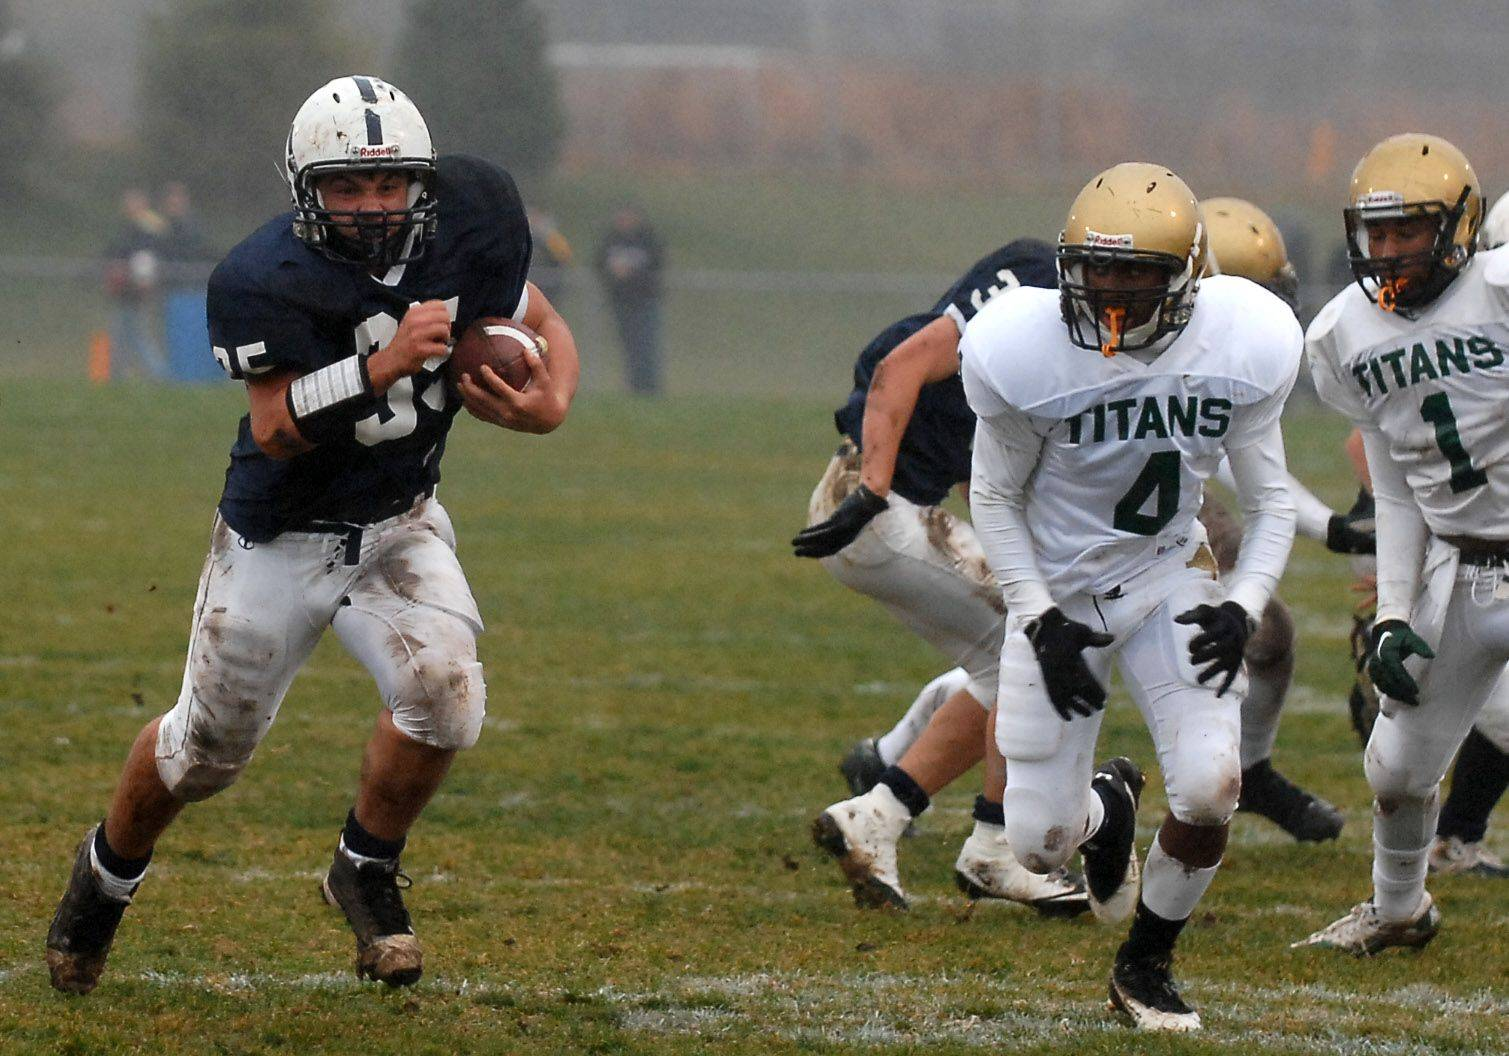 Cary-Grove's Patrick O'Malley runs to daylight against Rockford Boylan during Saturday's playoff game in Cary.